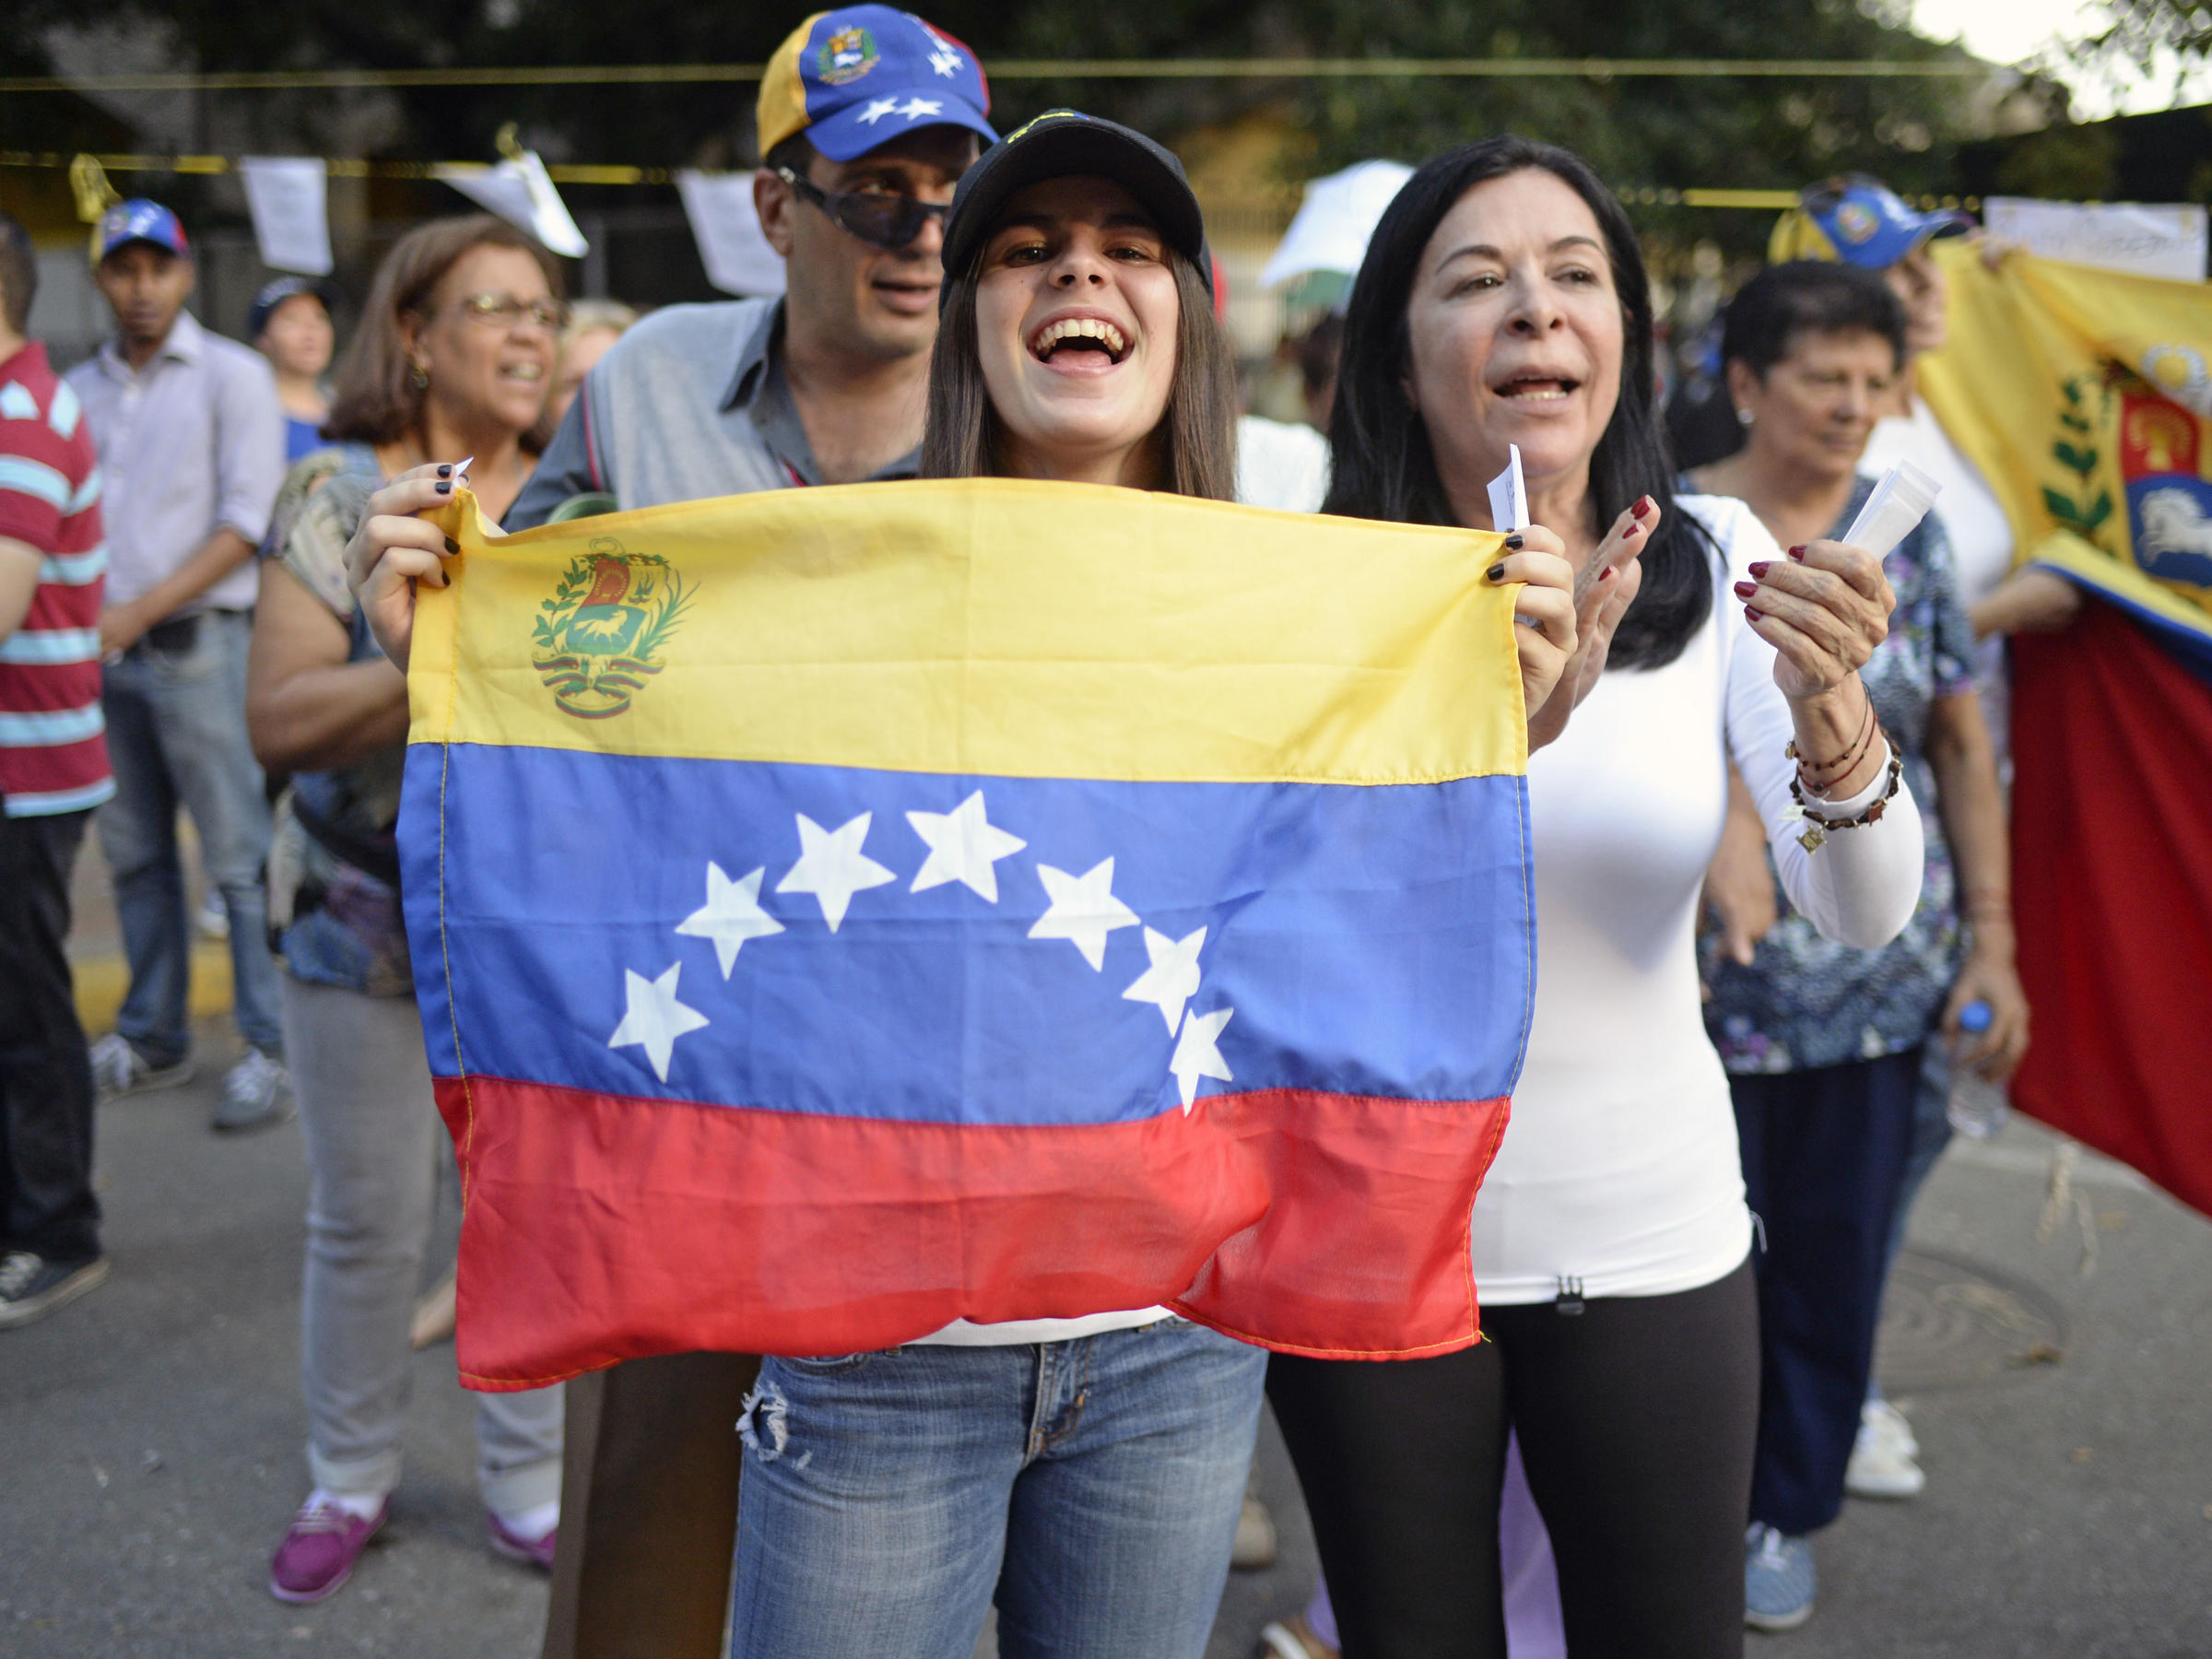 Venezuela's Opposition Referendum Overwhelmingly Rejects Maduro's Quest to Change Constitution